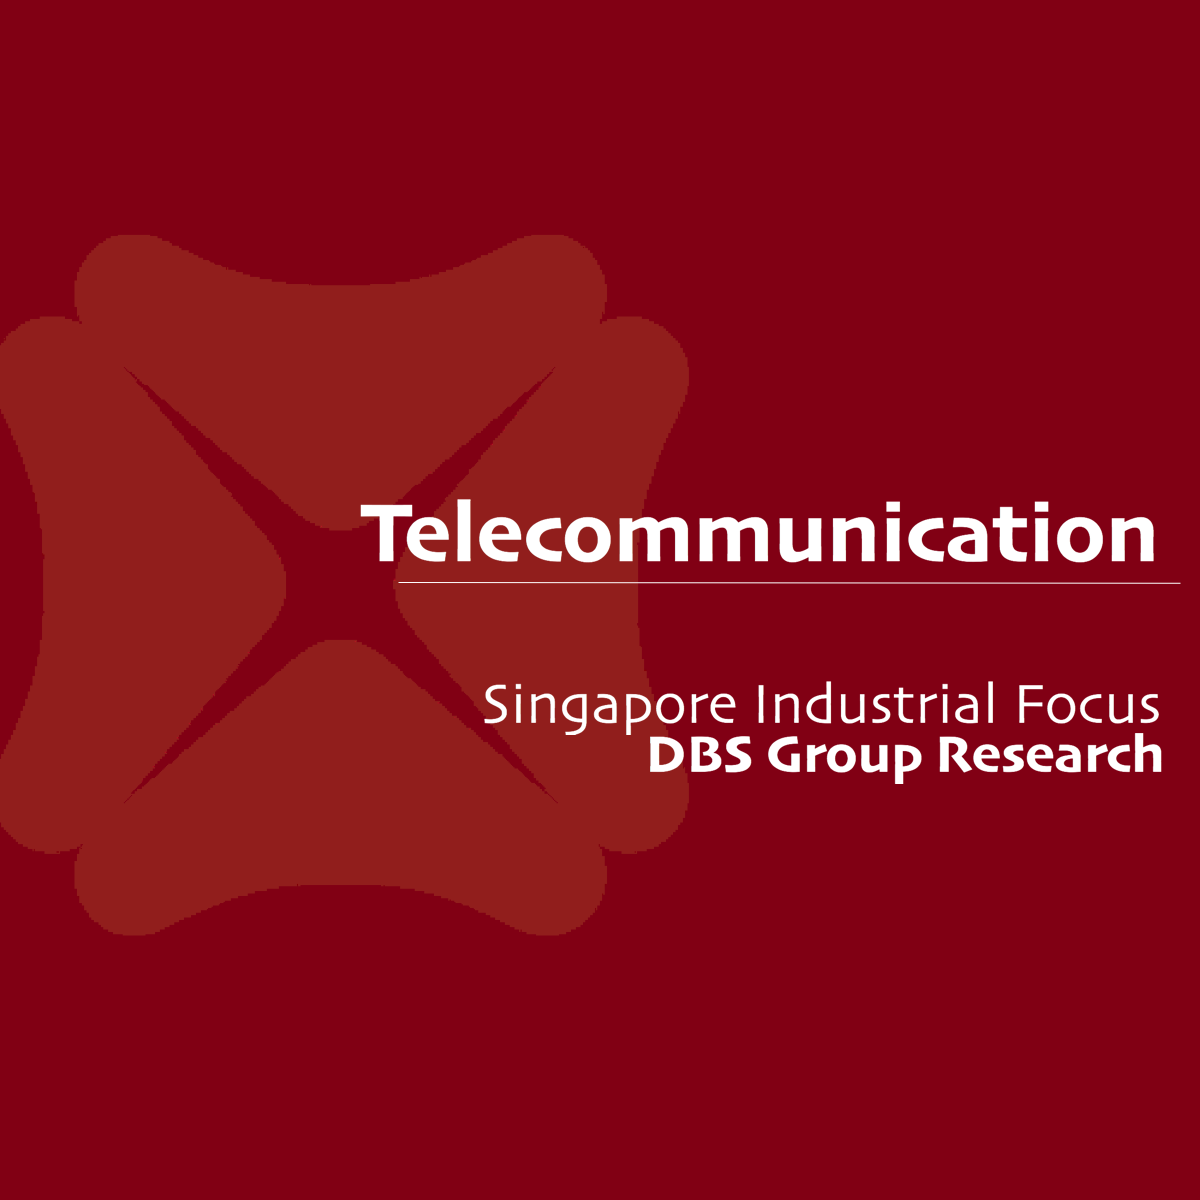 Singapore Telecom - DBS Vickers 2016-12-15: One more leg down